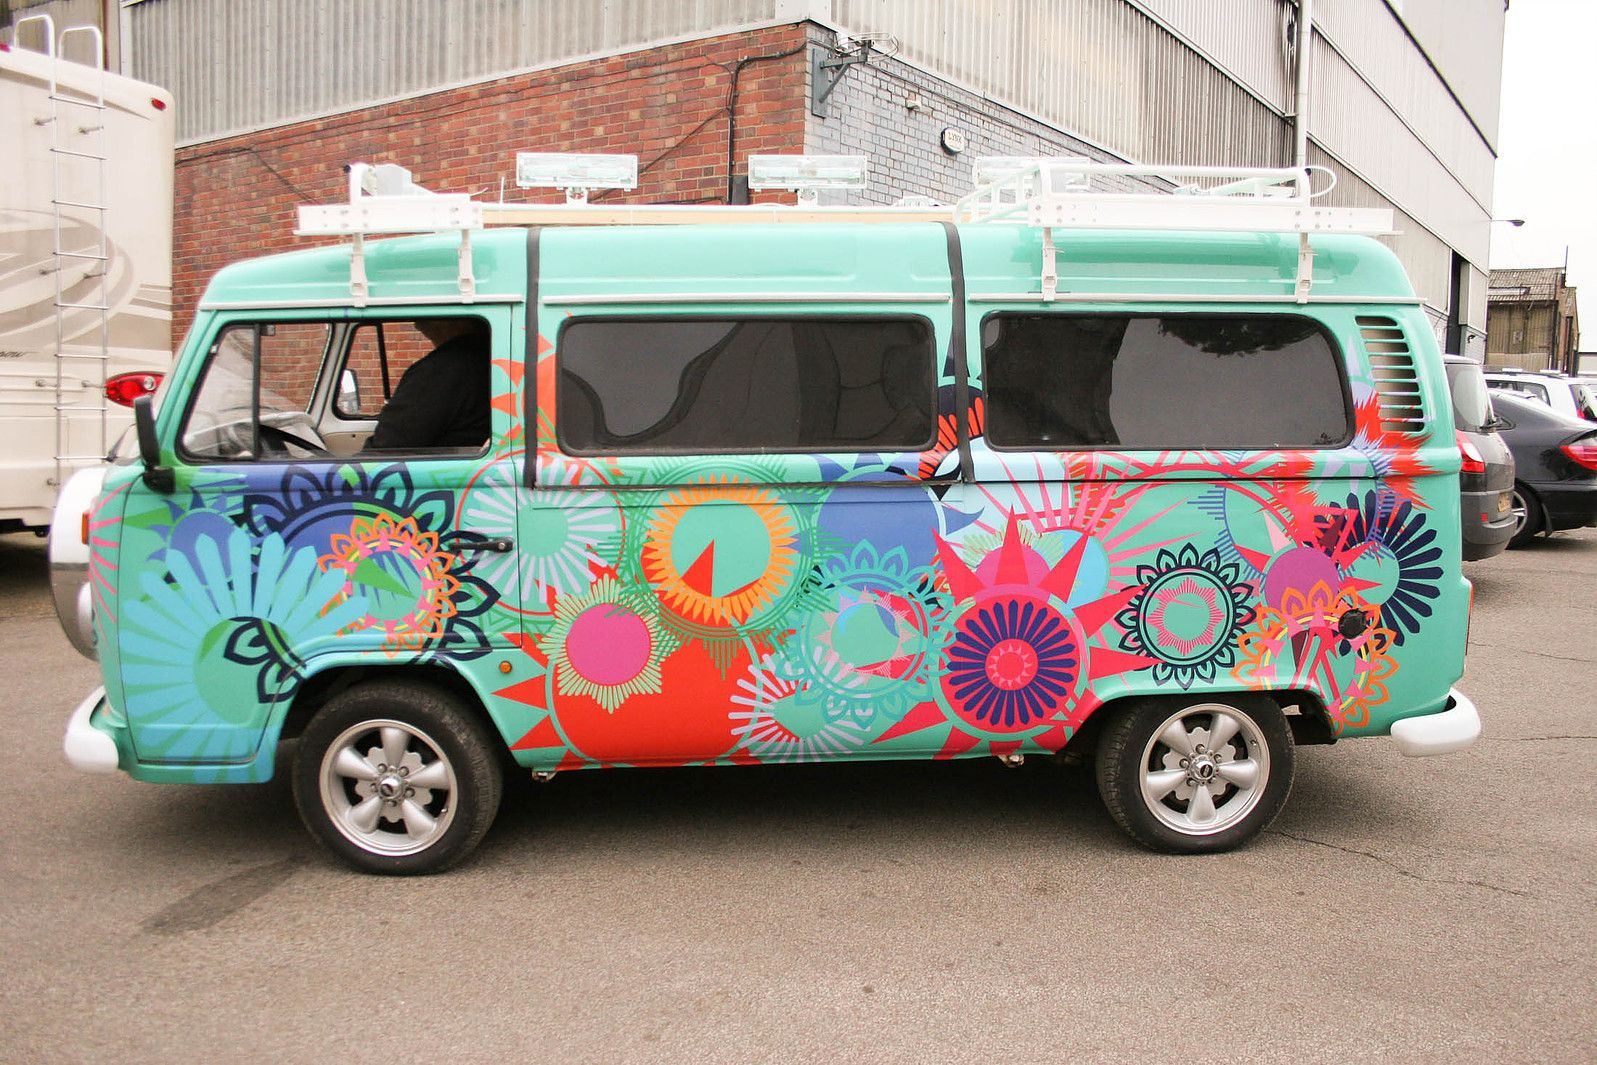 Pin by Jody Measures on Experiential Vehicles, Vans